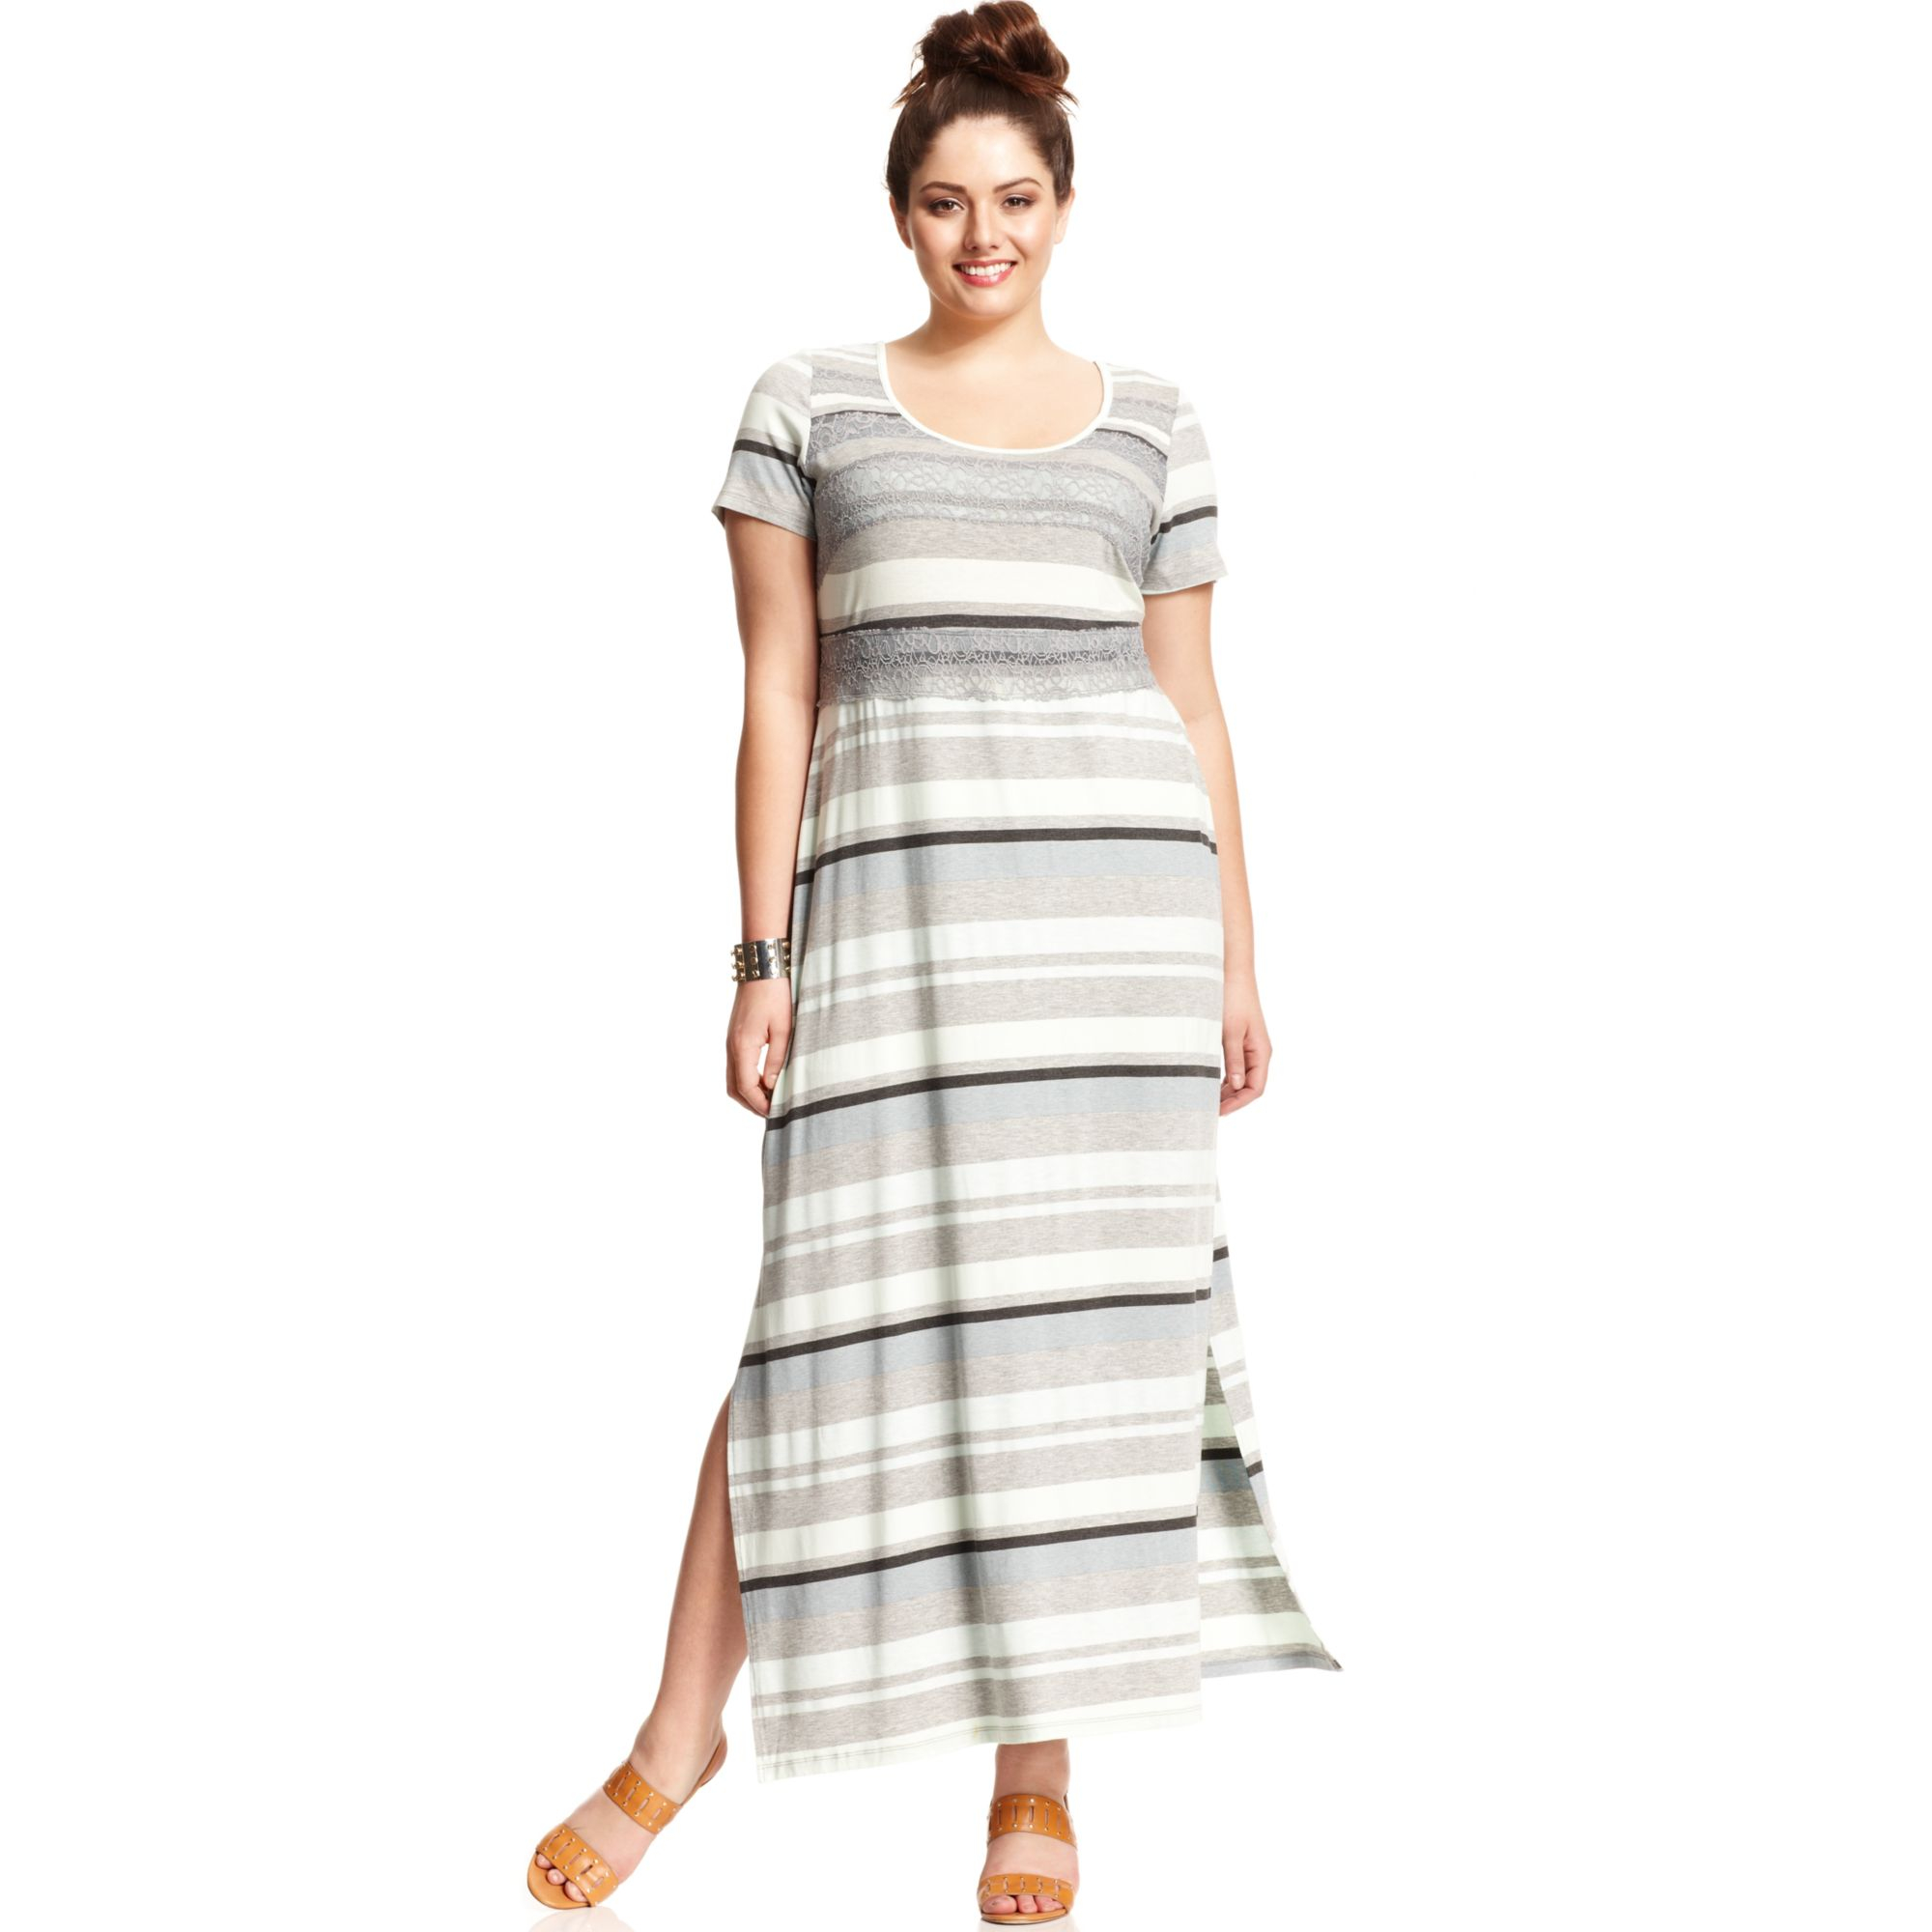 Jessica Simpson Plus Size Shortsleeve Striped Maxi Dress in Blue - Lyst